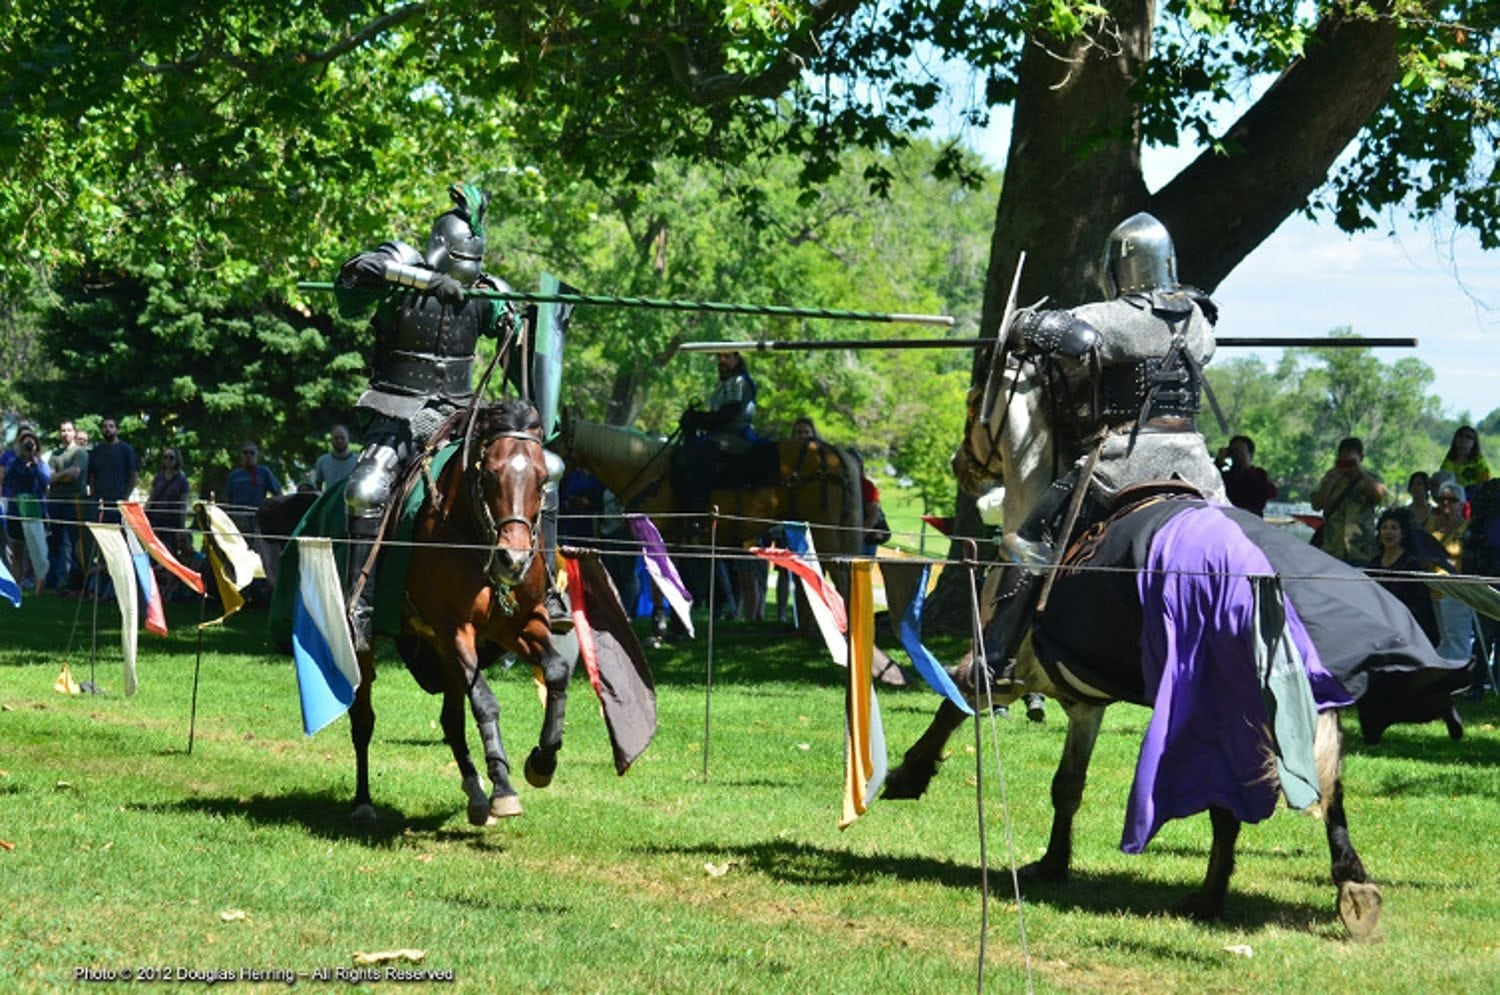 Knights Jousting Seattle 1500